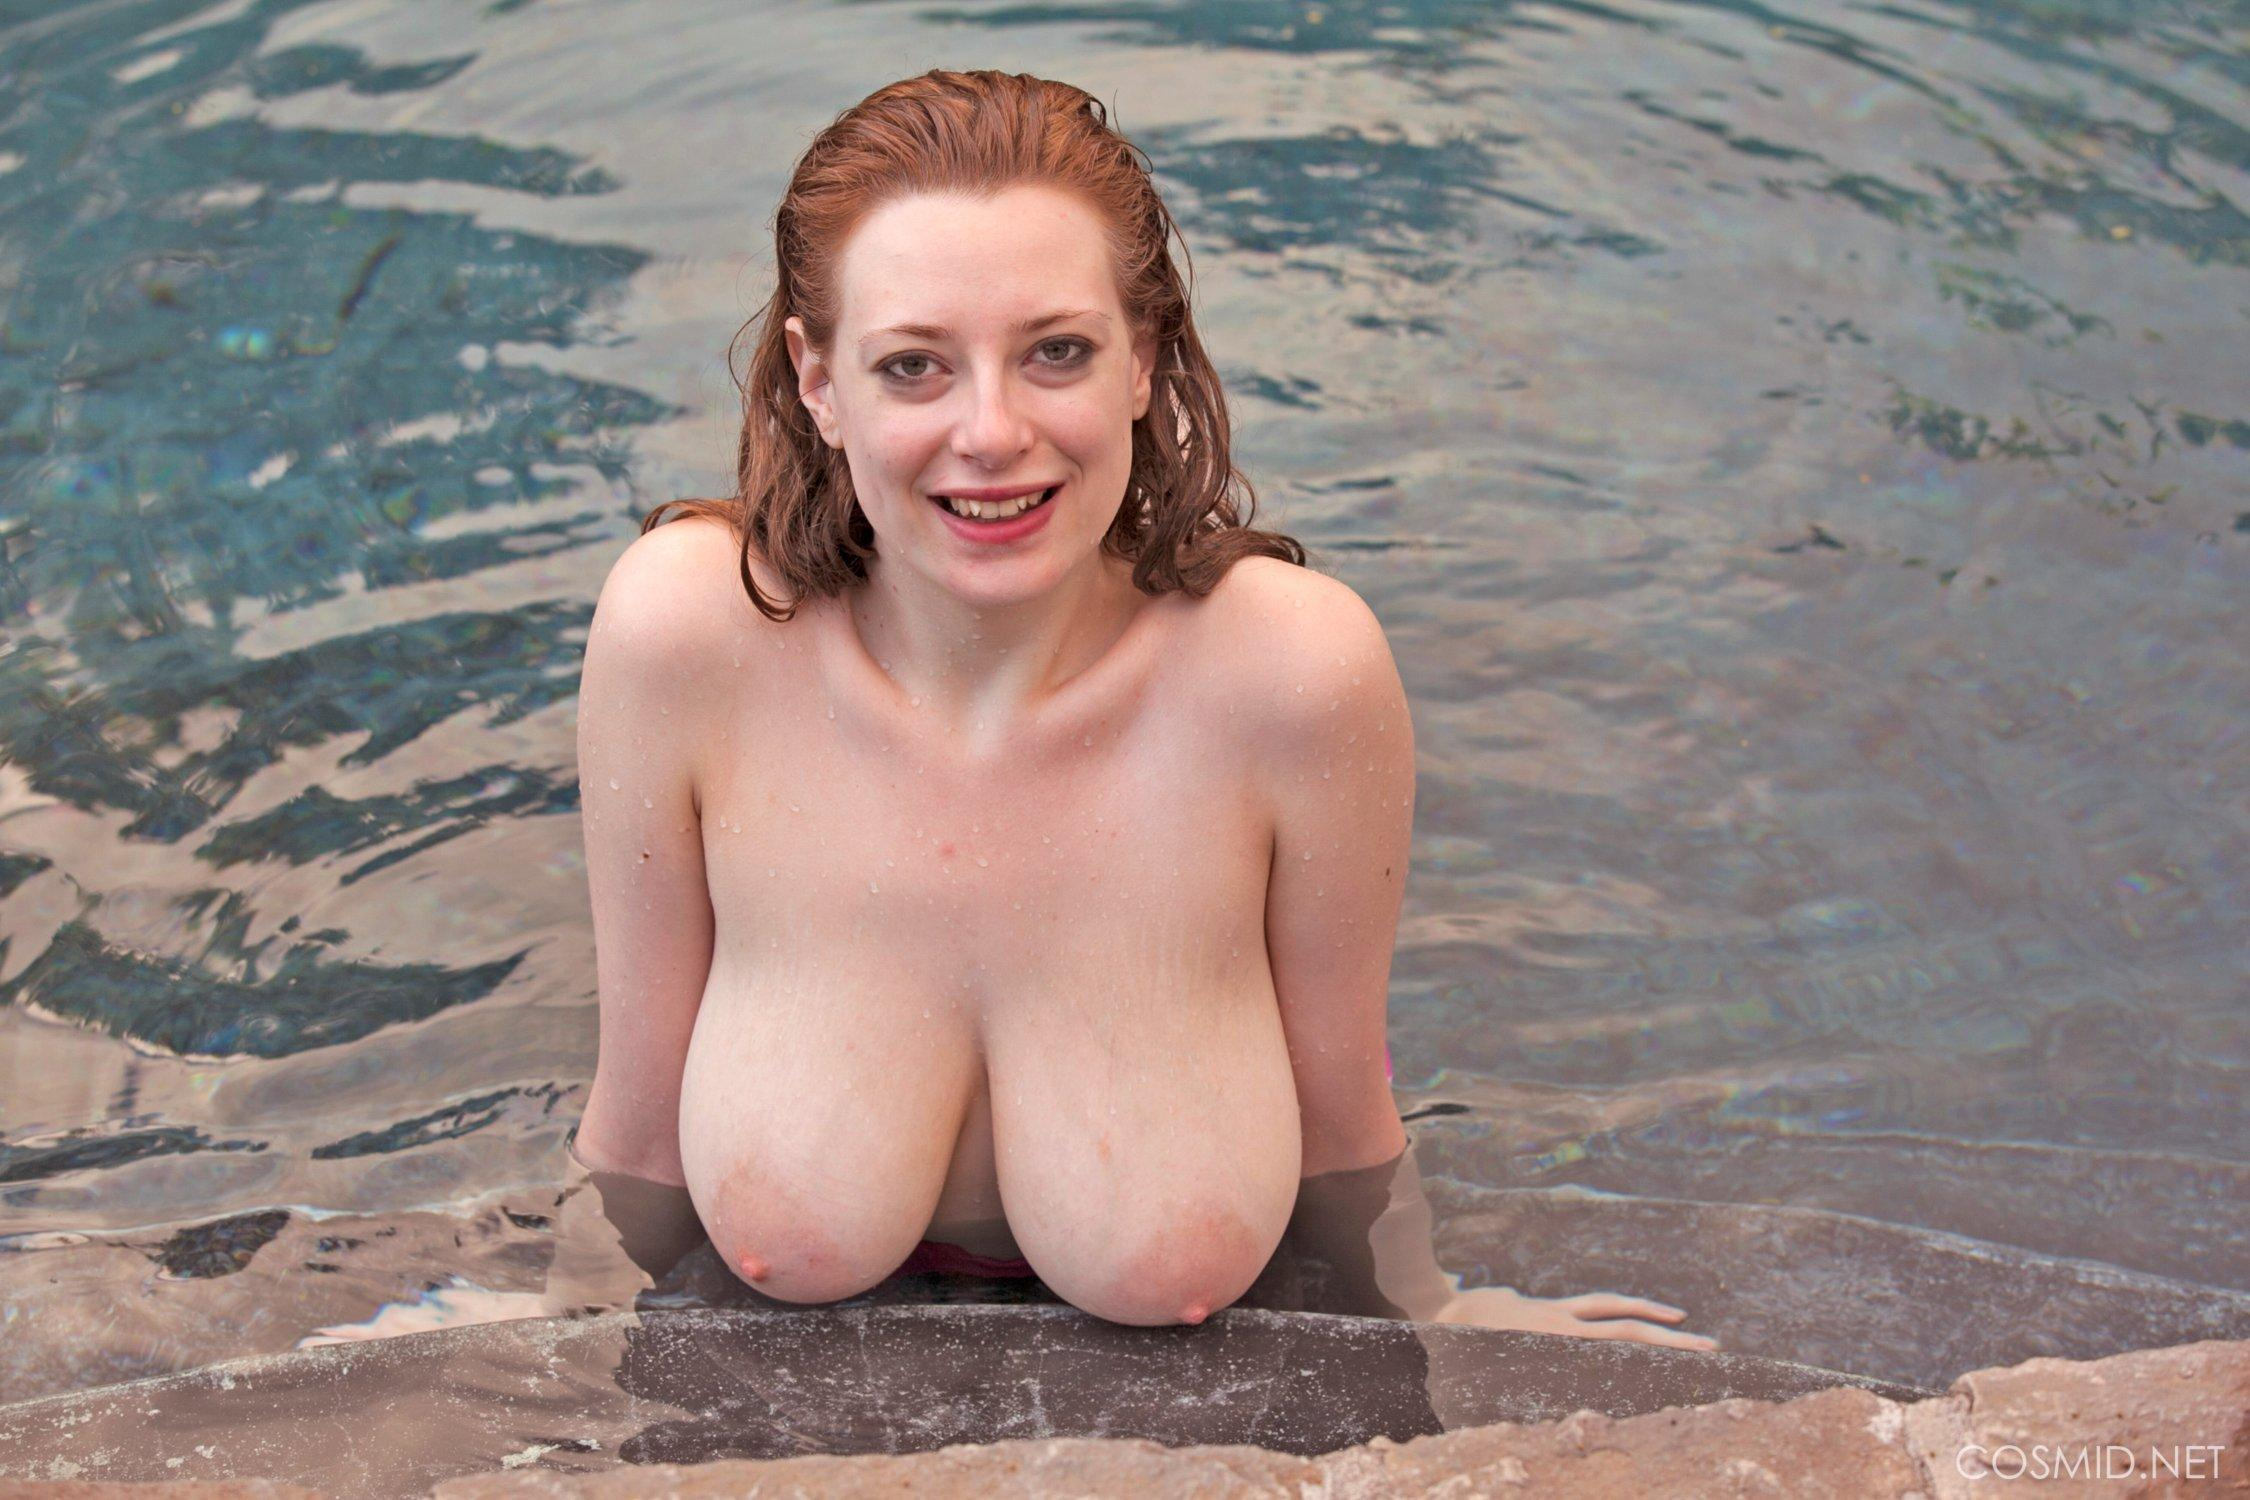 Redhead skinny dipping